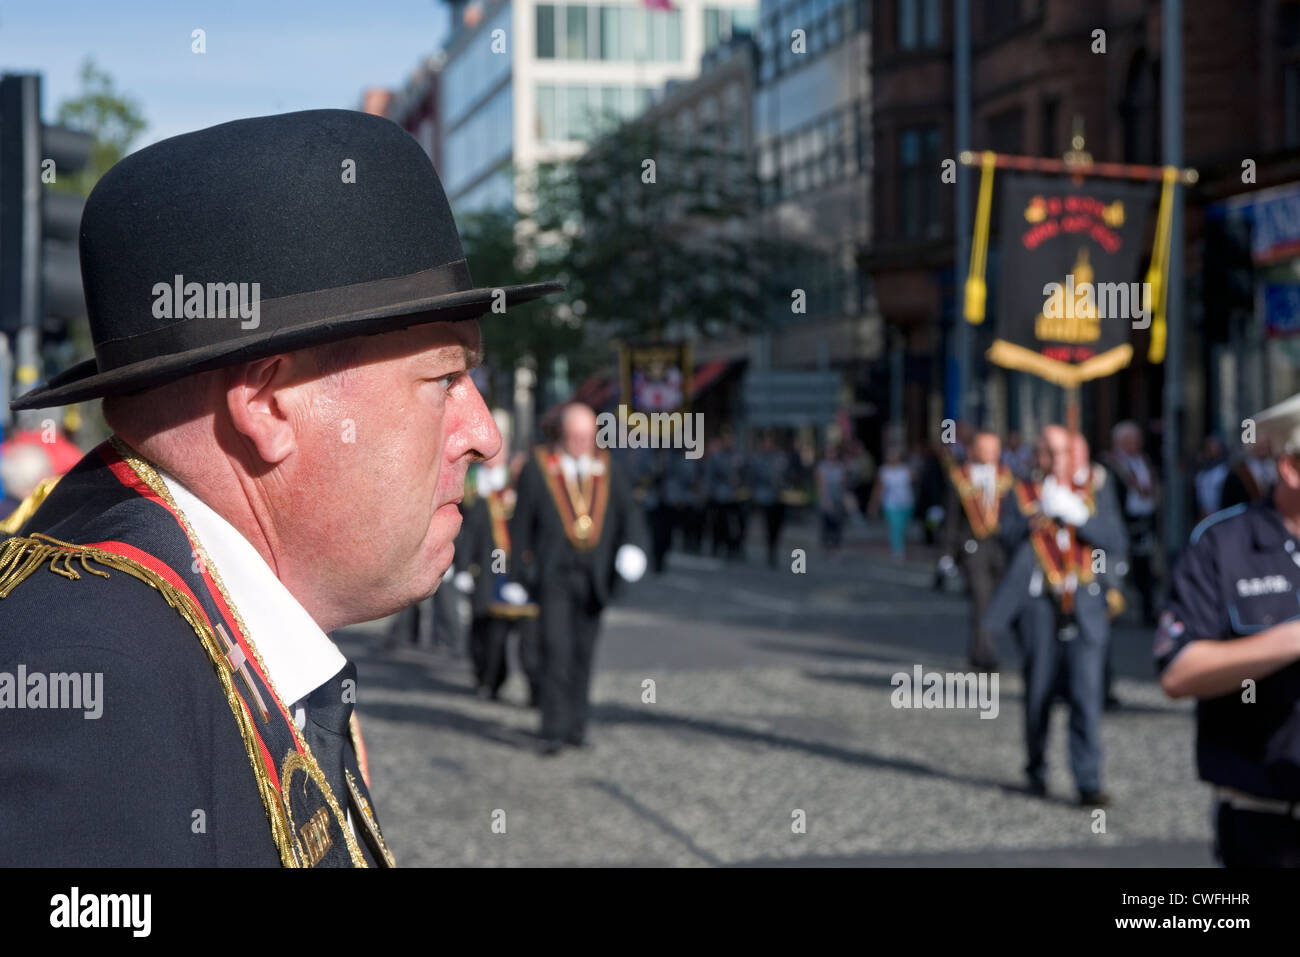 Member of the Orange Order at march in Belfast. - Stock Image